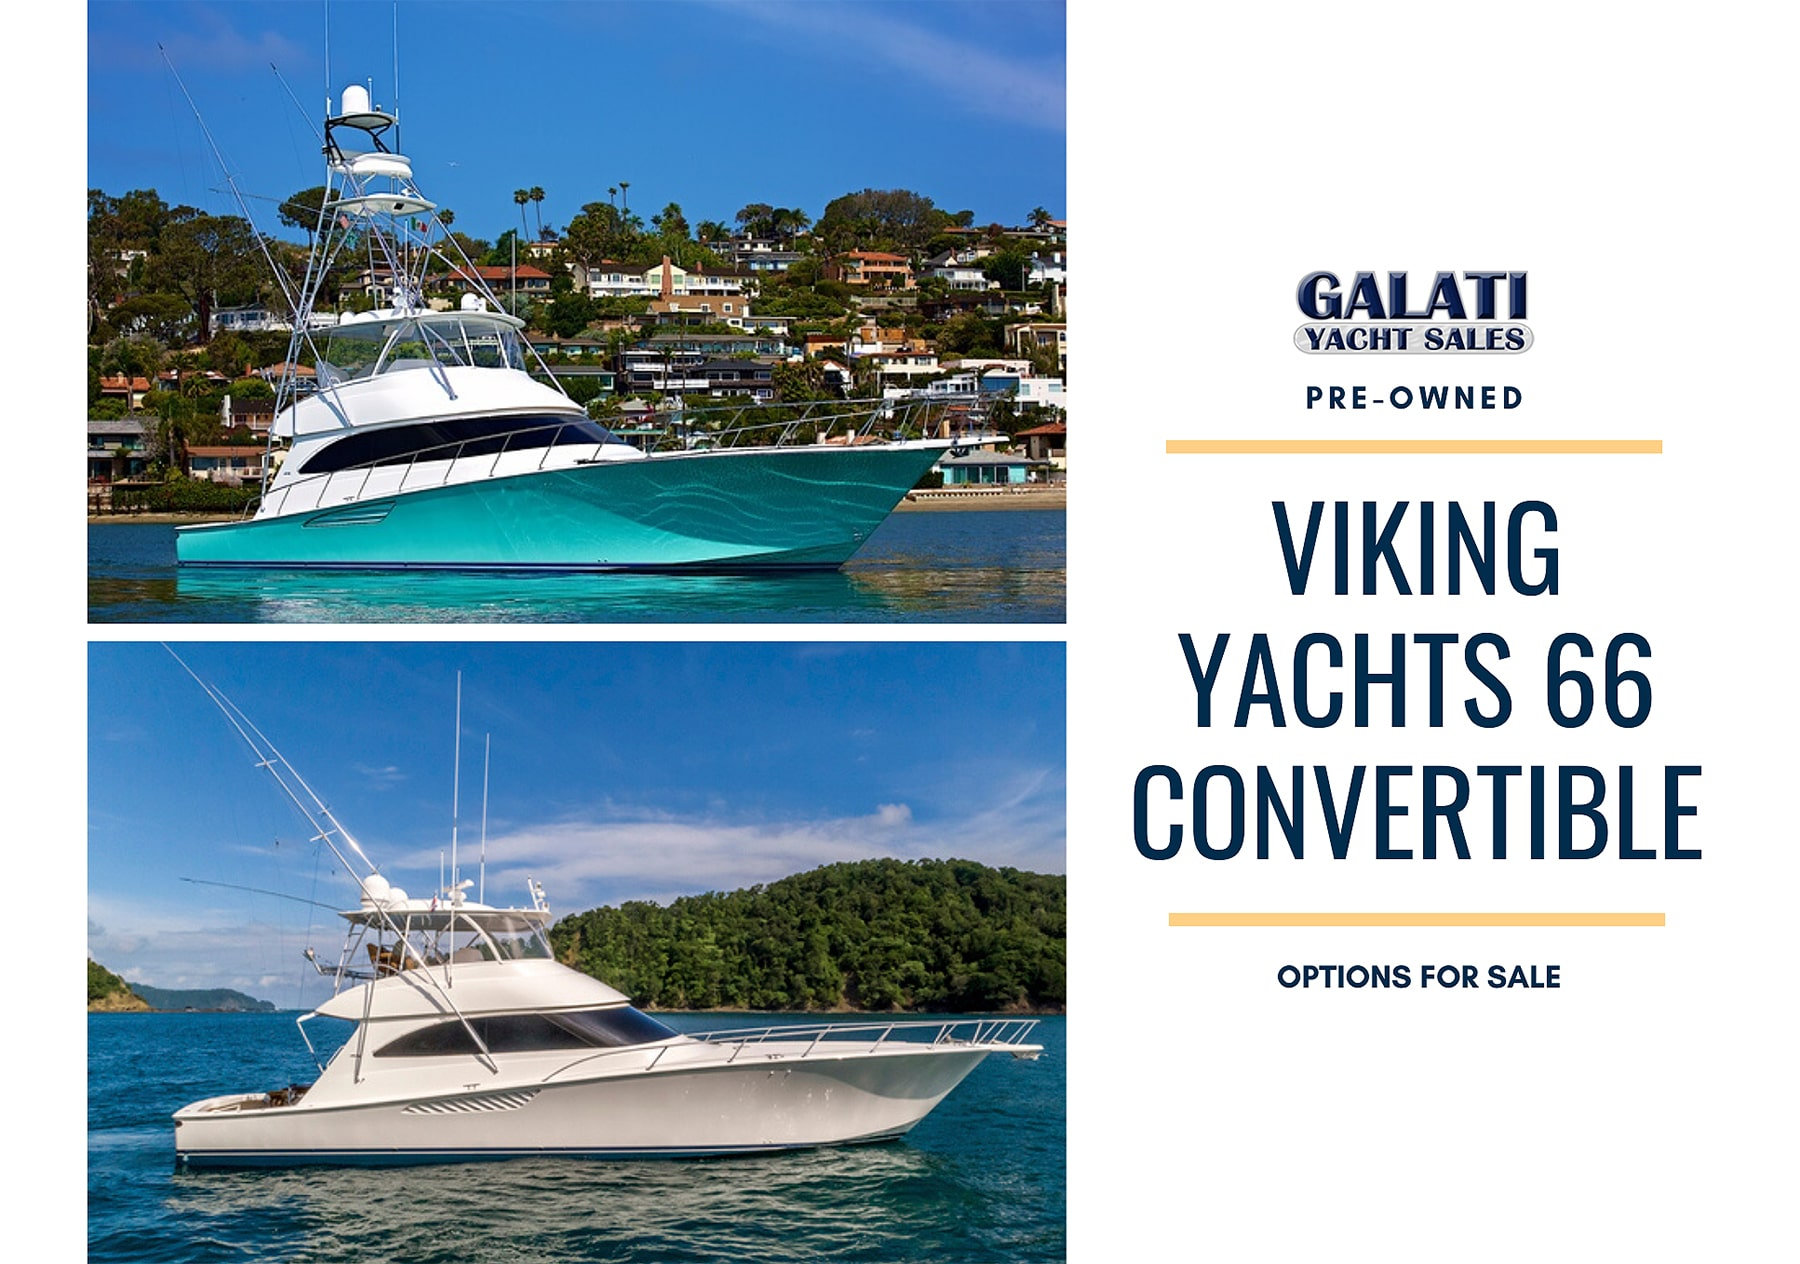 Viking Yachts 66 Convertible Options For Sale